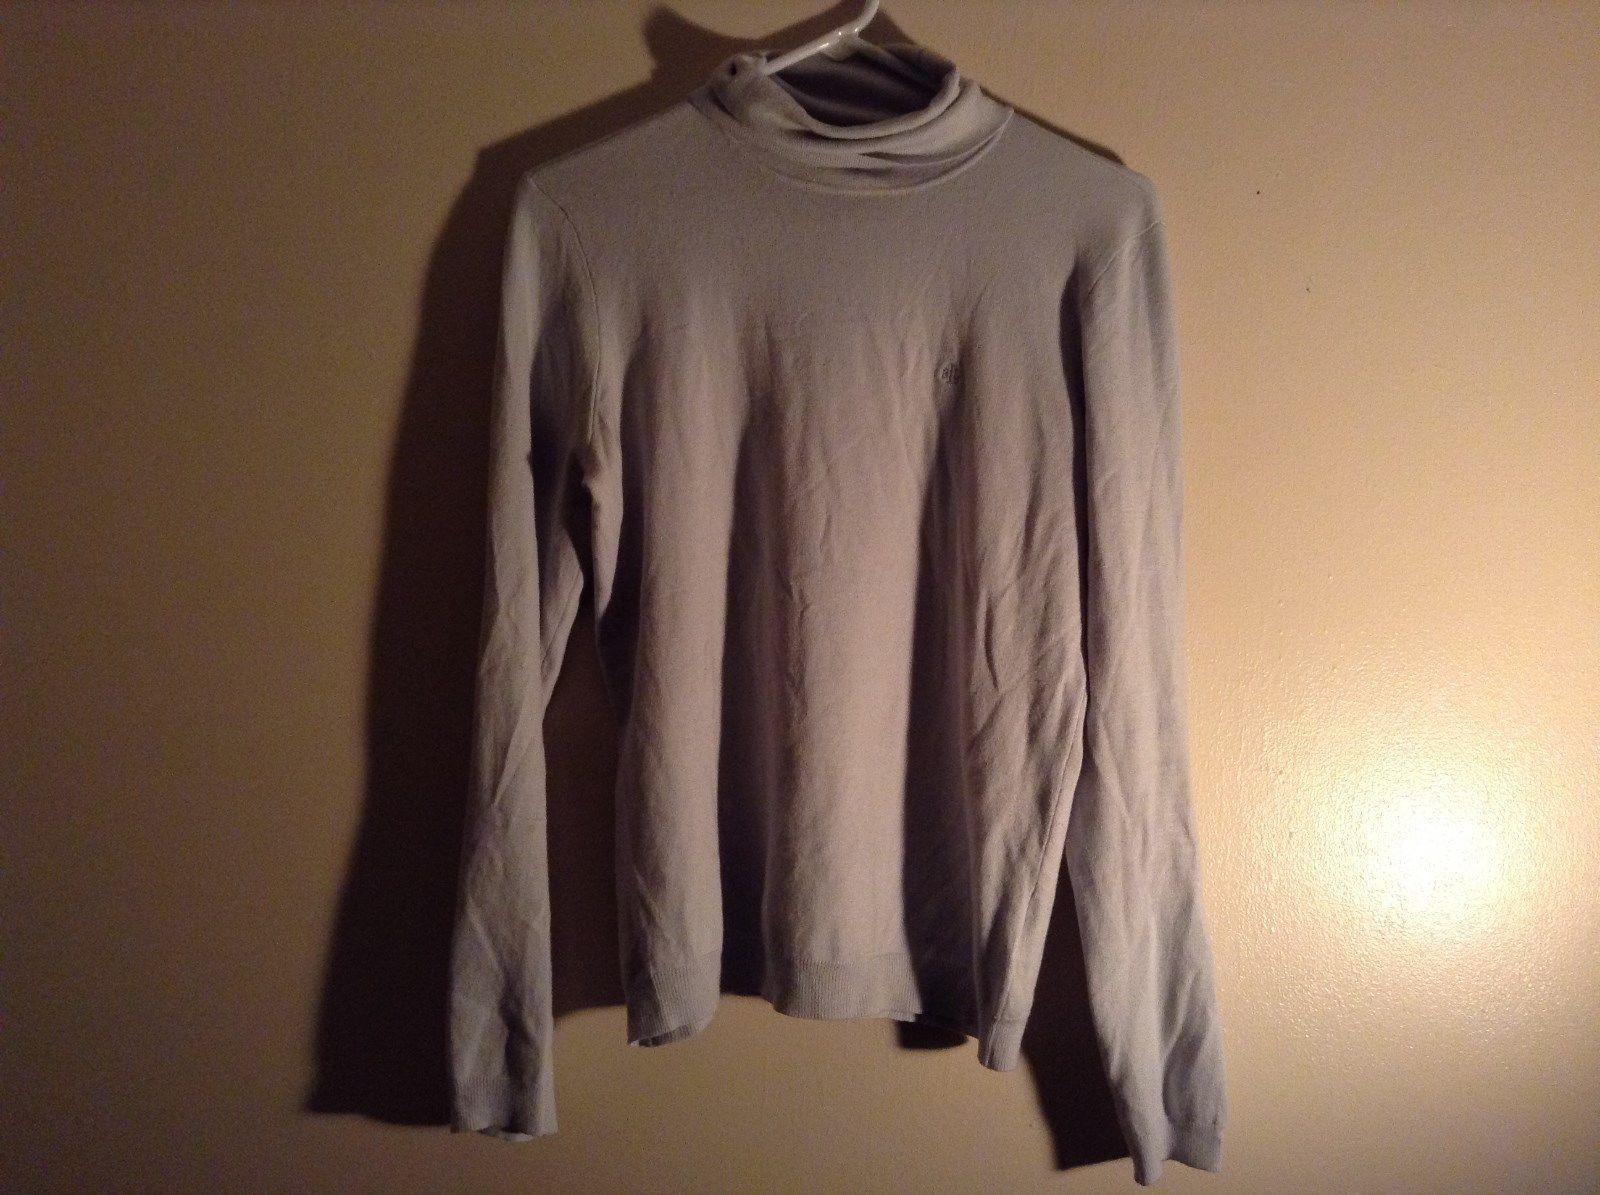 Light Blue Long Sleeve Ralph Lauren Turtleneck Shirt Size Medium